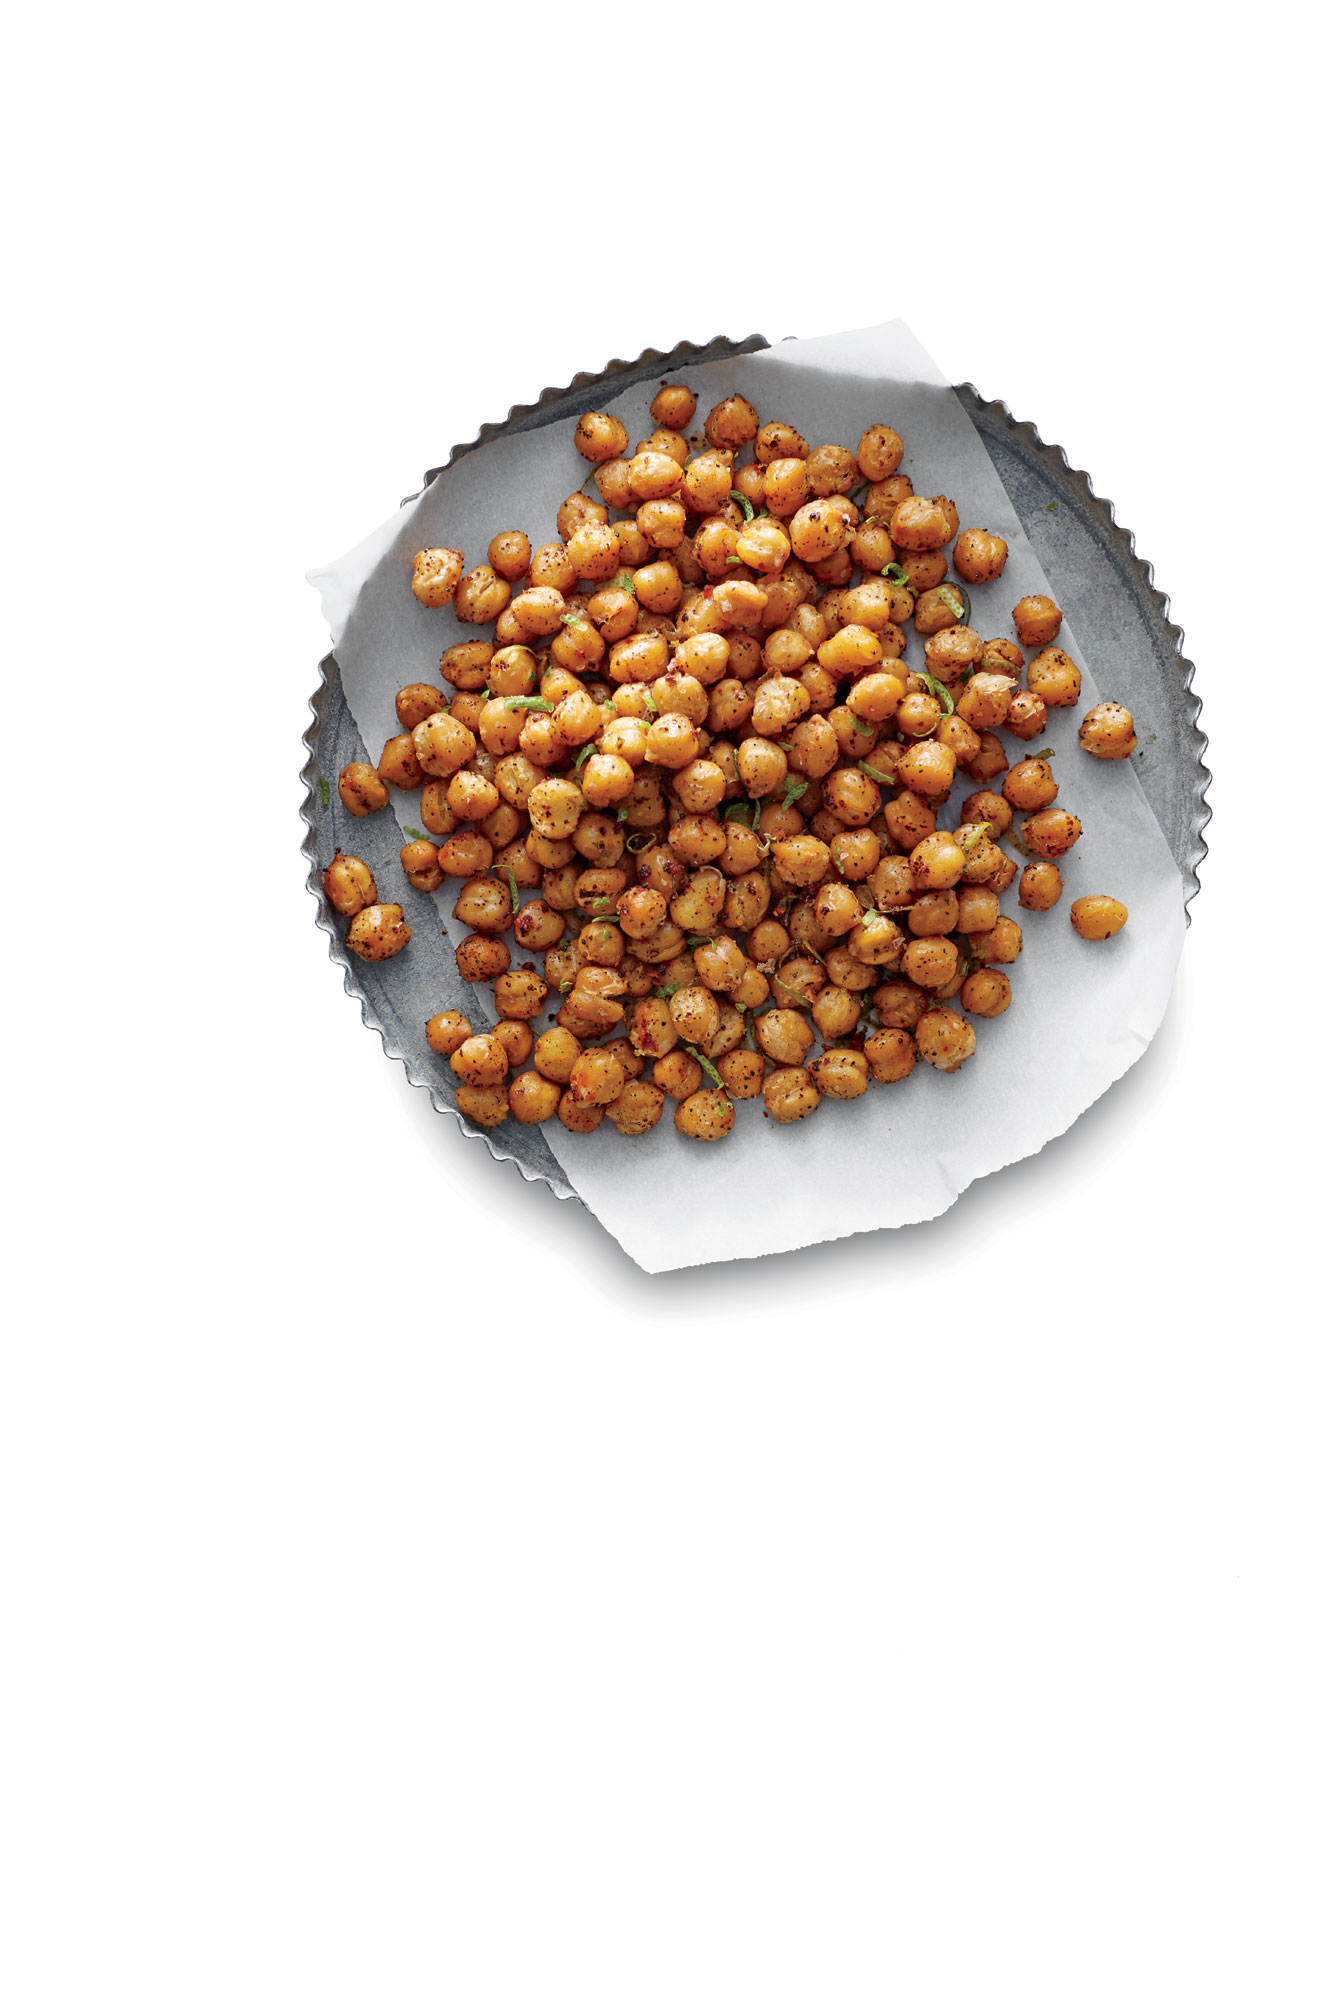 Why Roasted Chickpeas Should be a Staple in Your Meal Prep Game